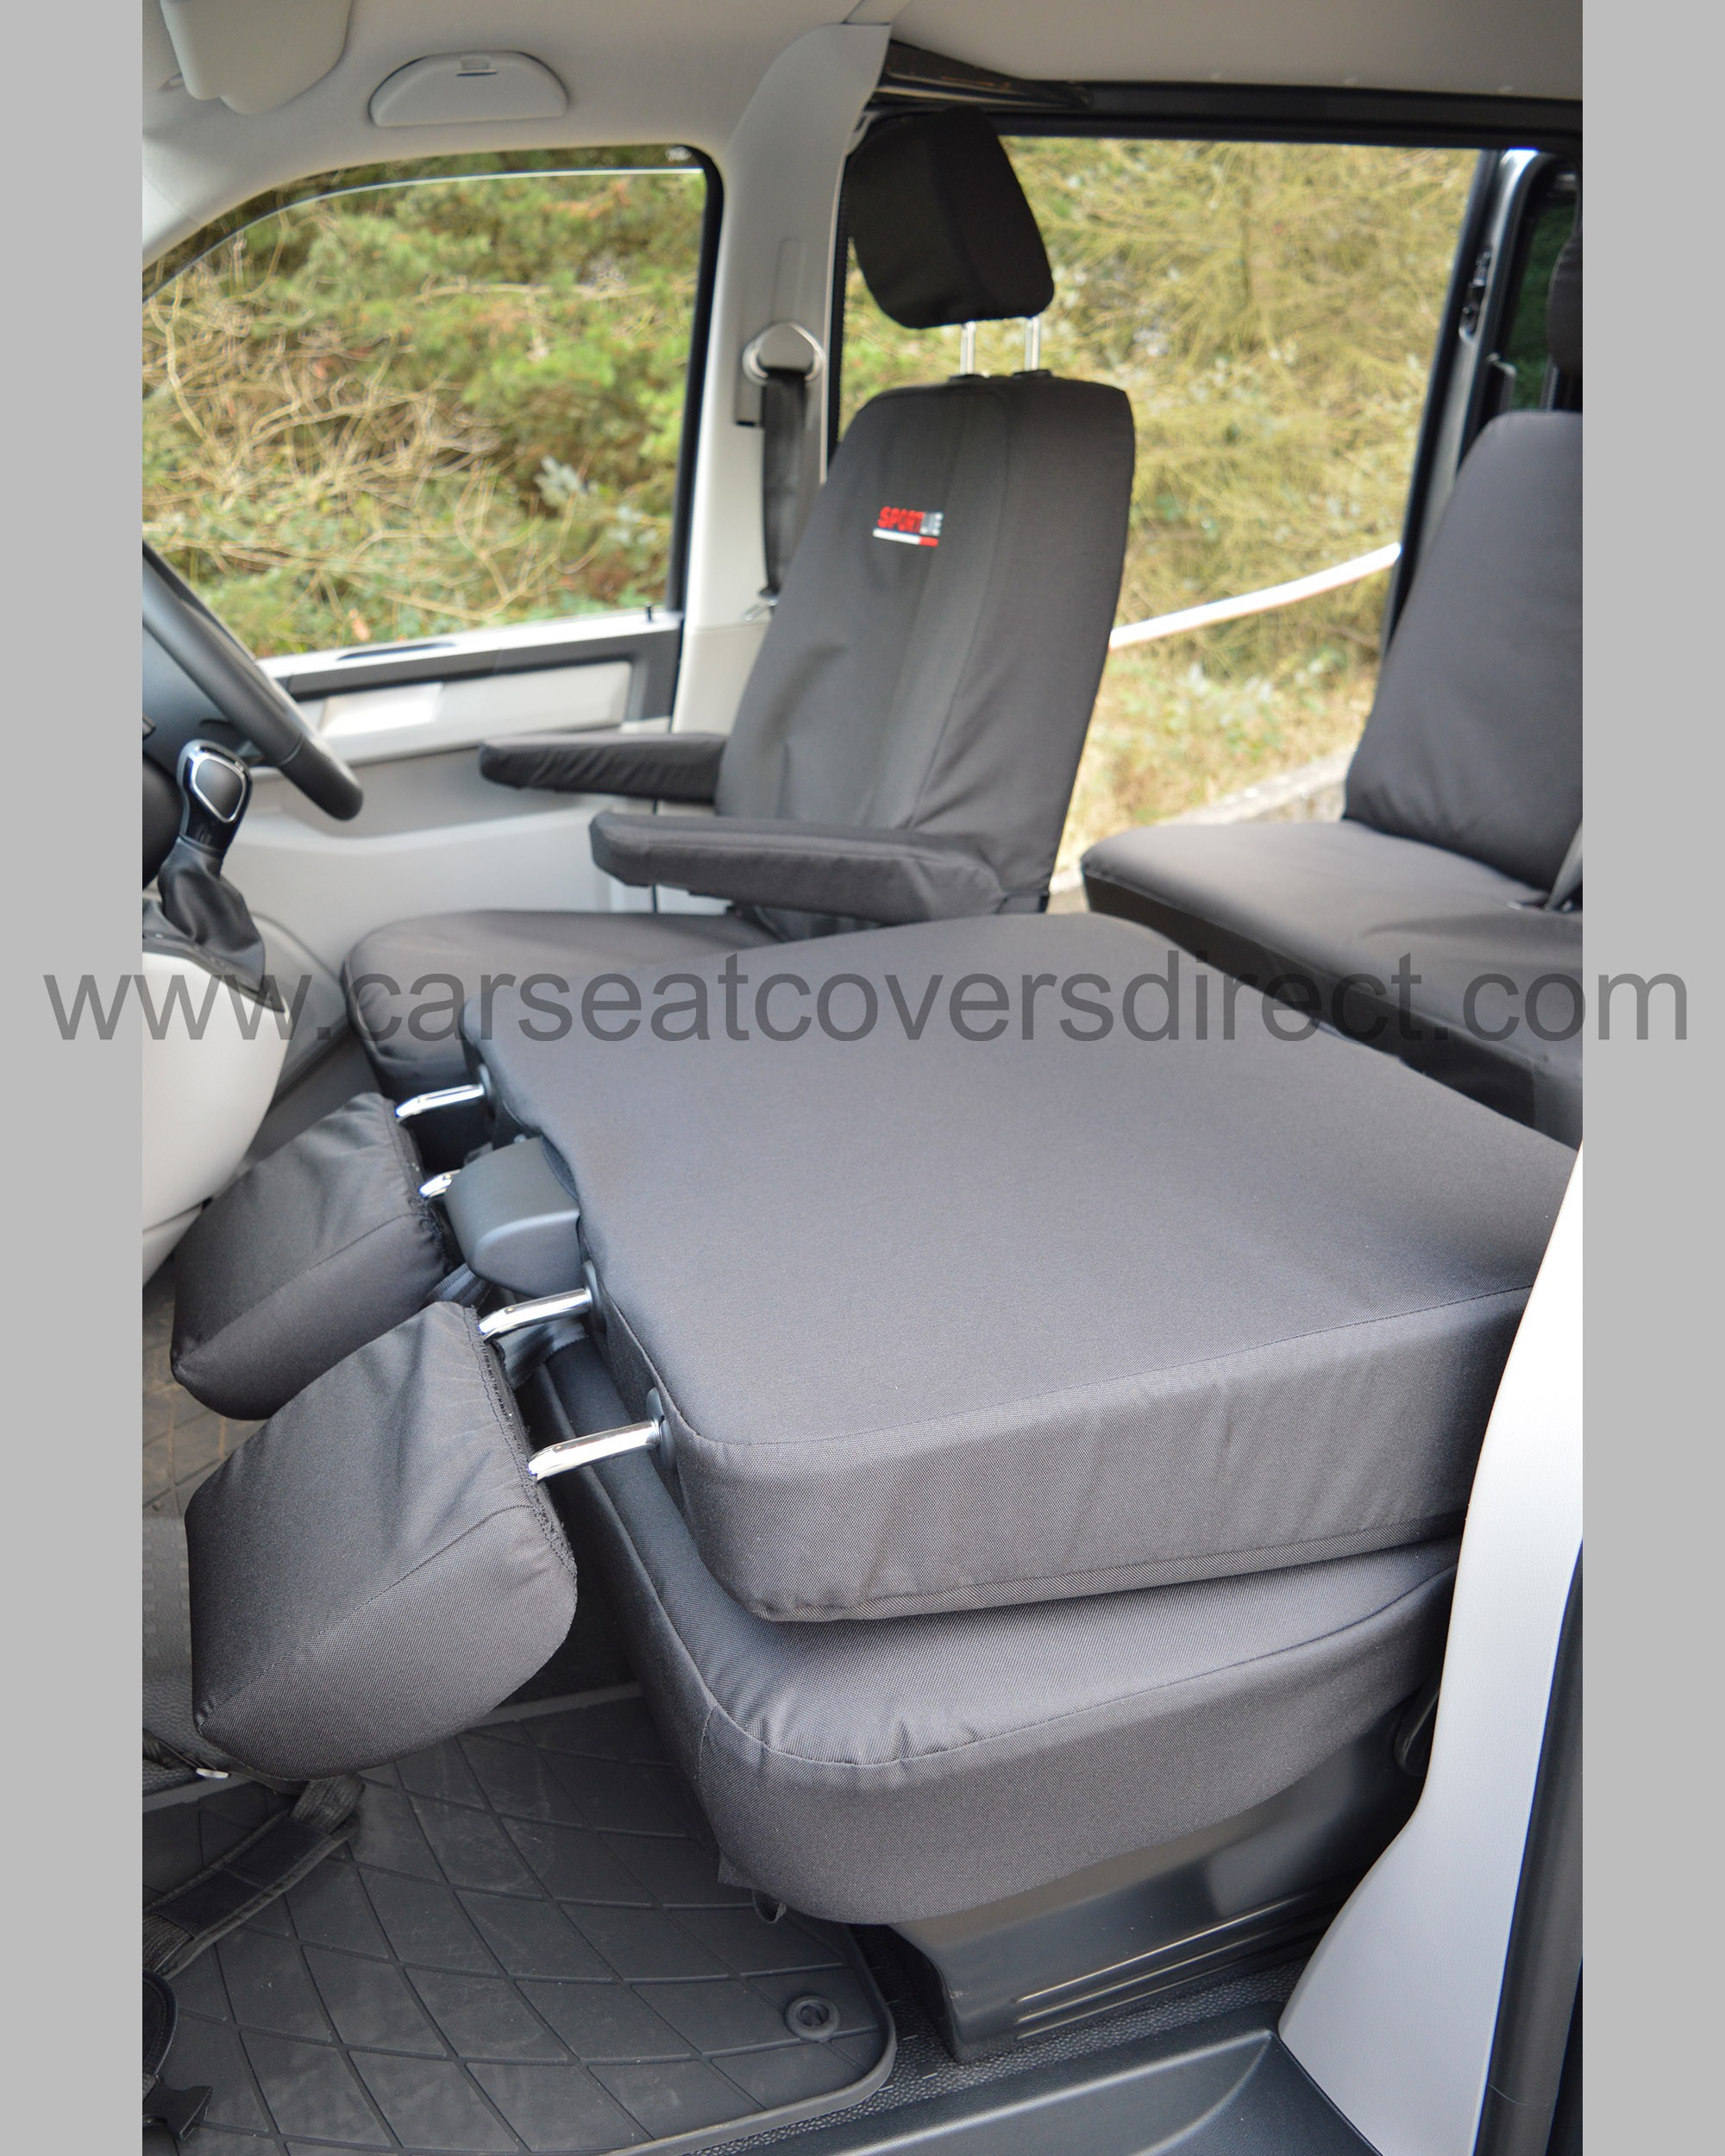 Car Bench Seat Covers >> VW T6 Seat Covers - Sportline EXTRA Heavy Duty